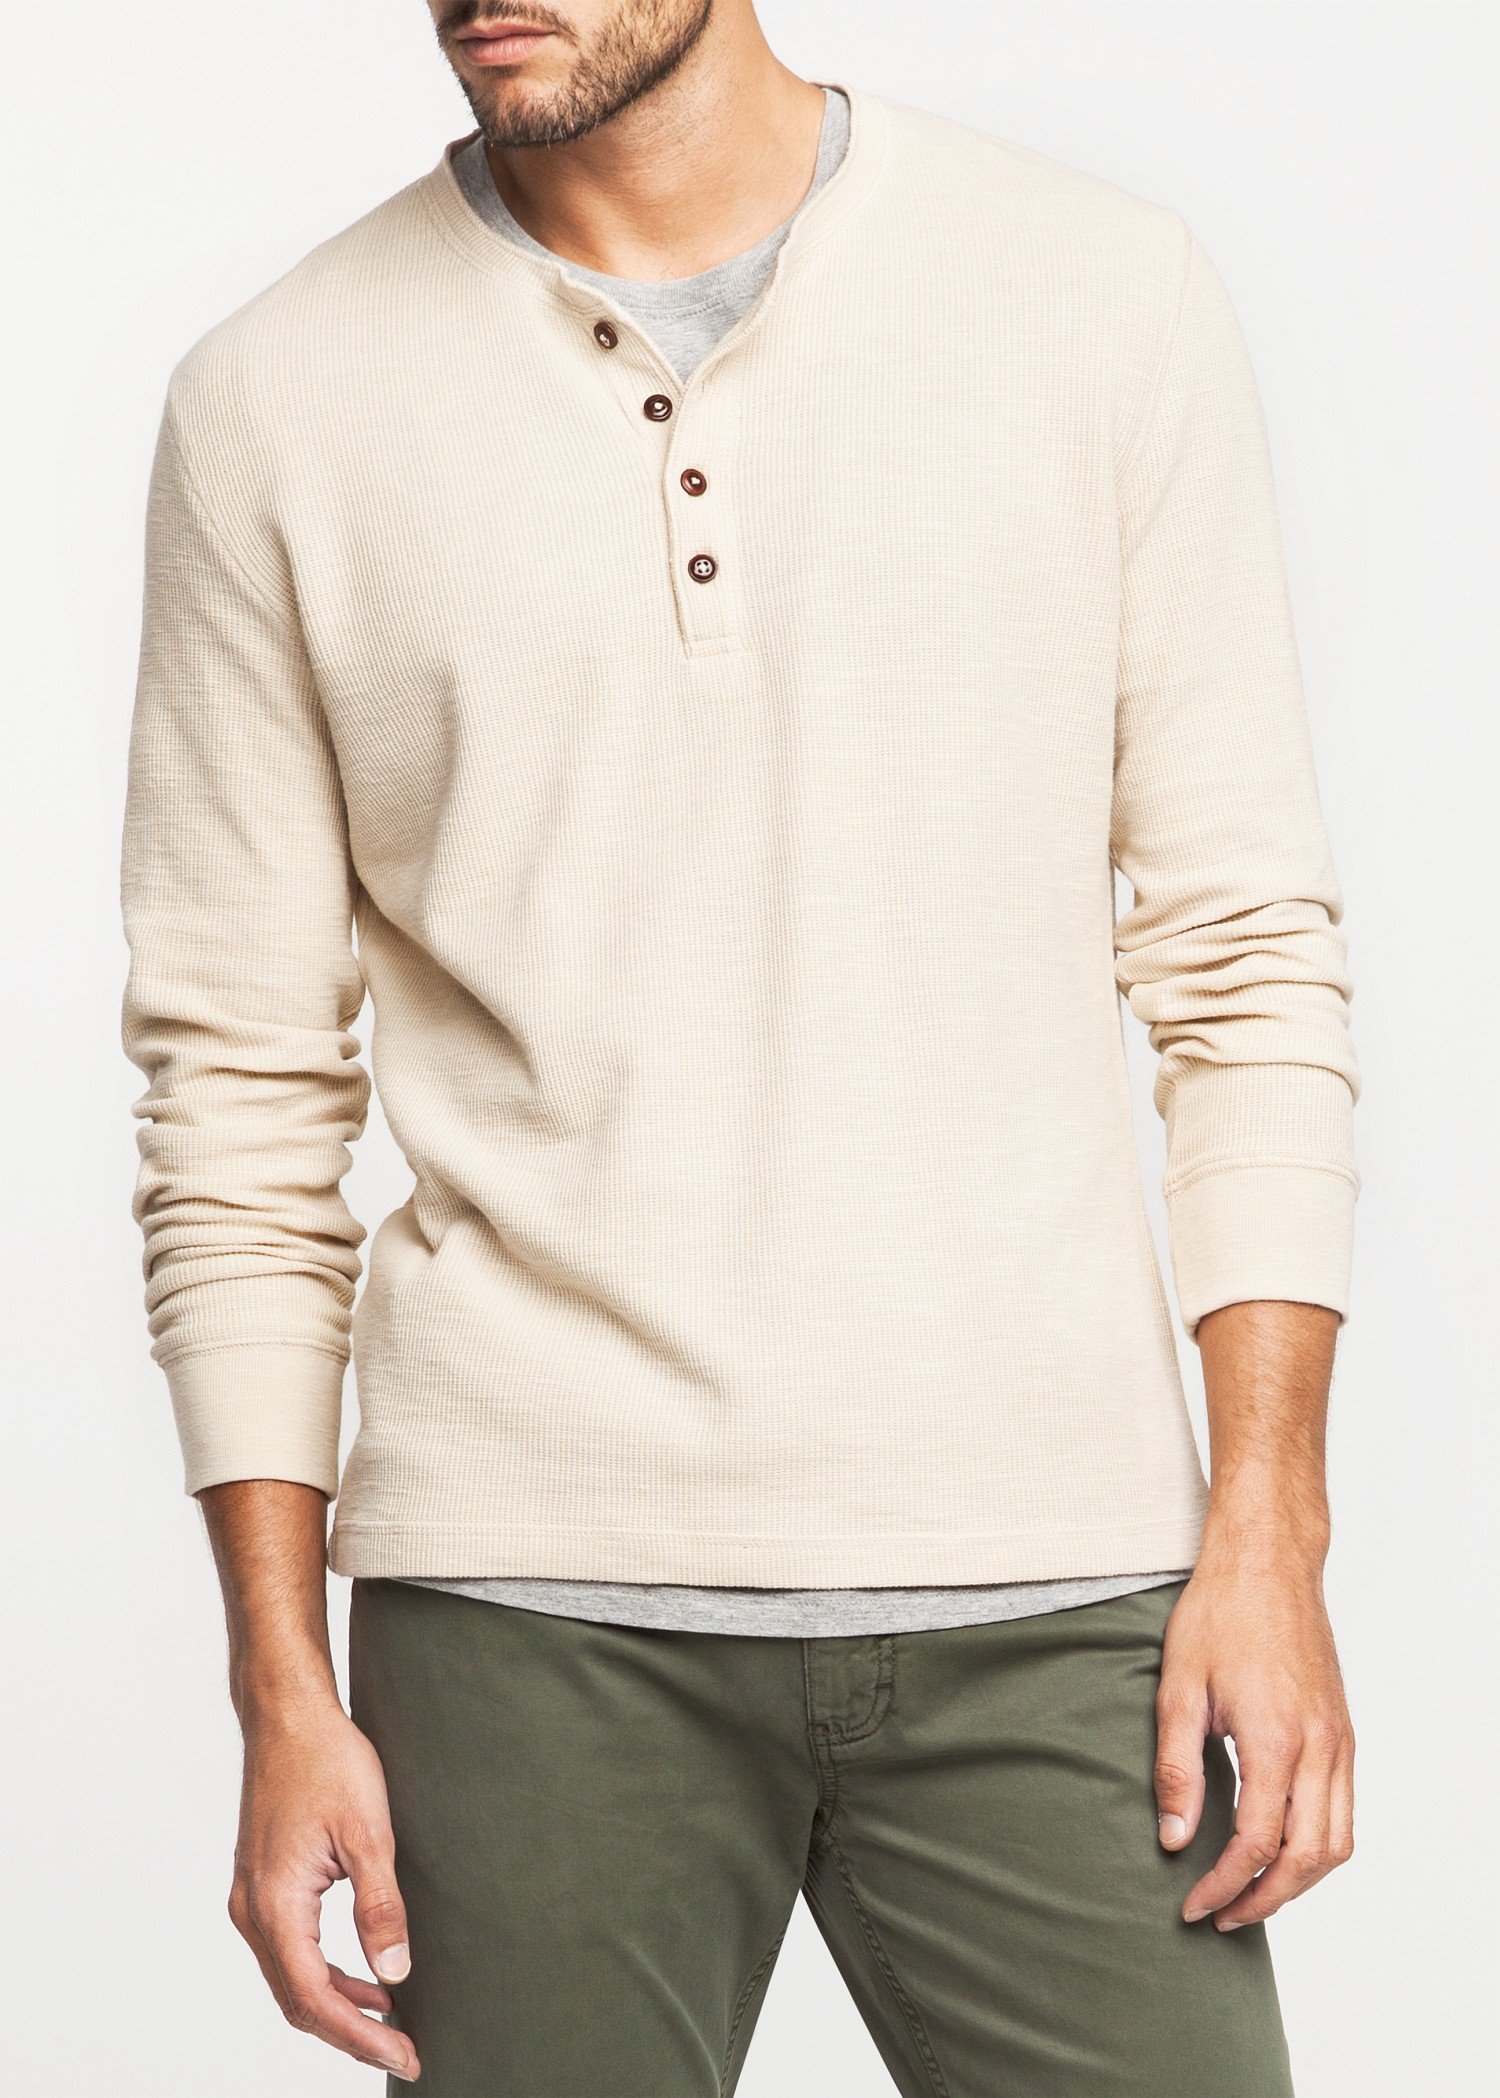 Mango Ribbed Cotton Henley Tshirt in Natural for Men | Lyst